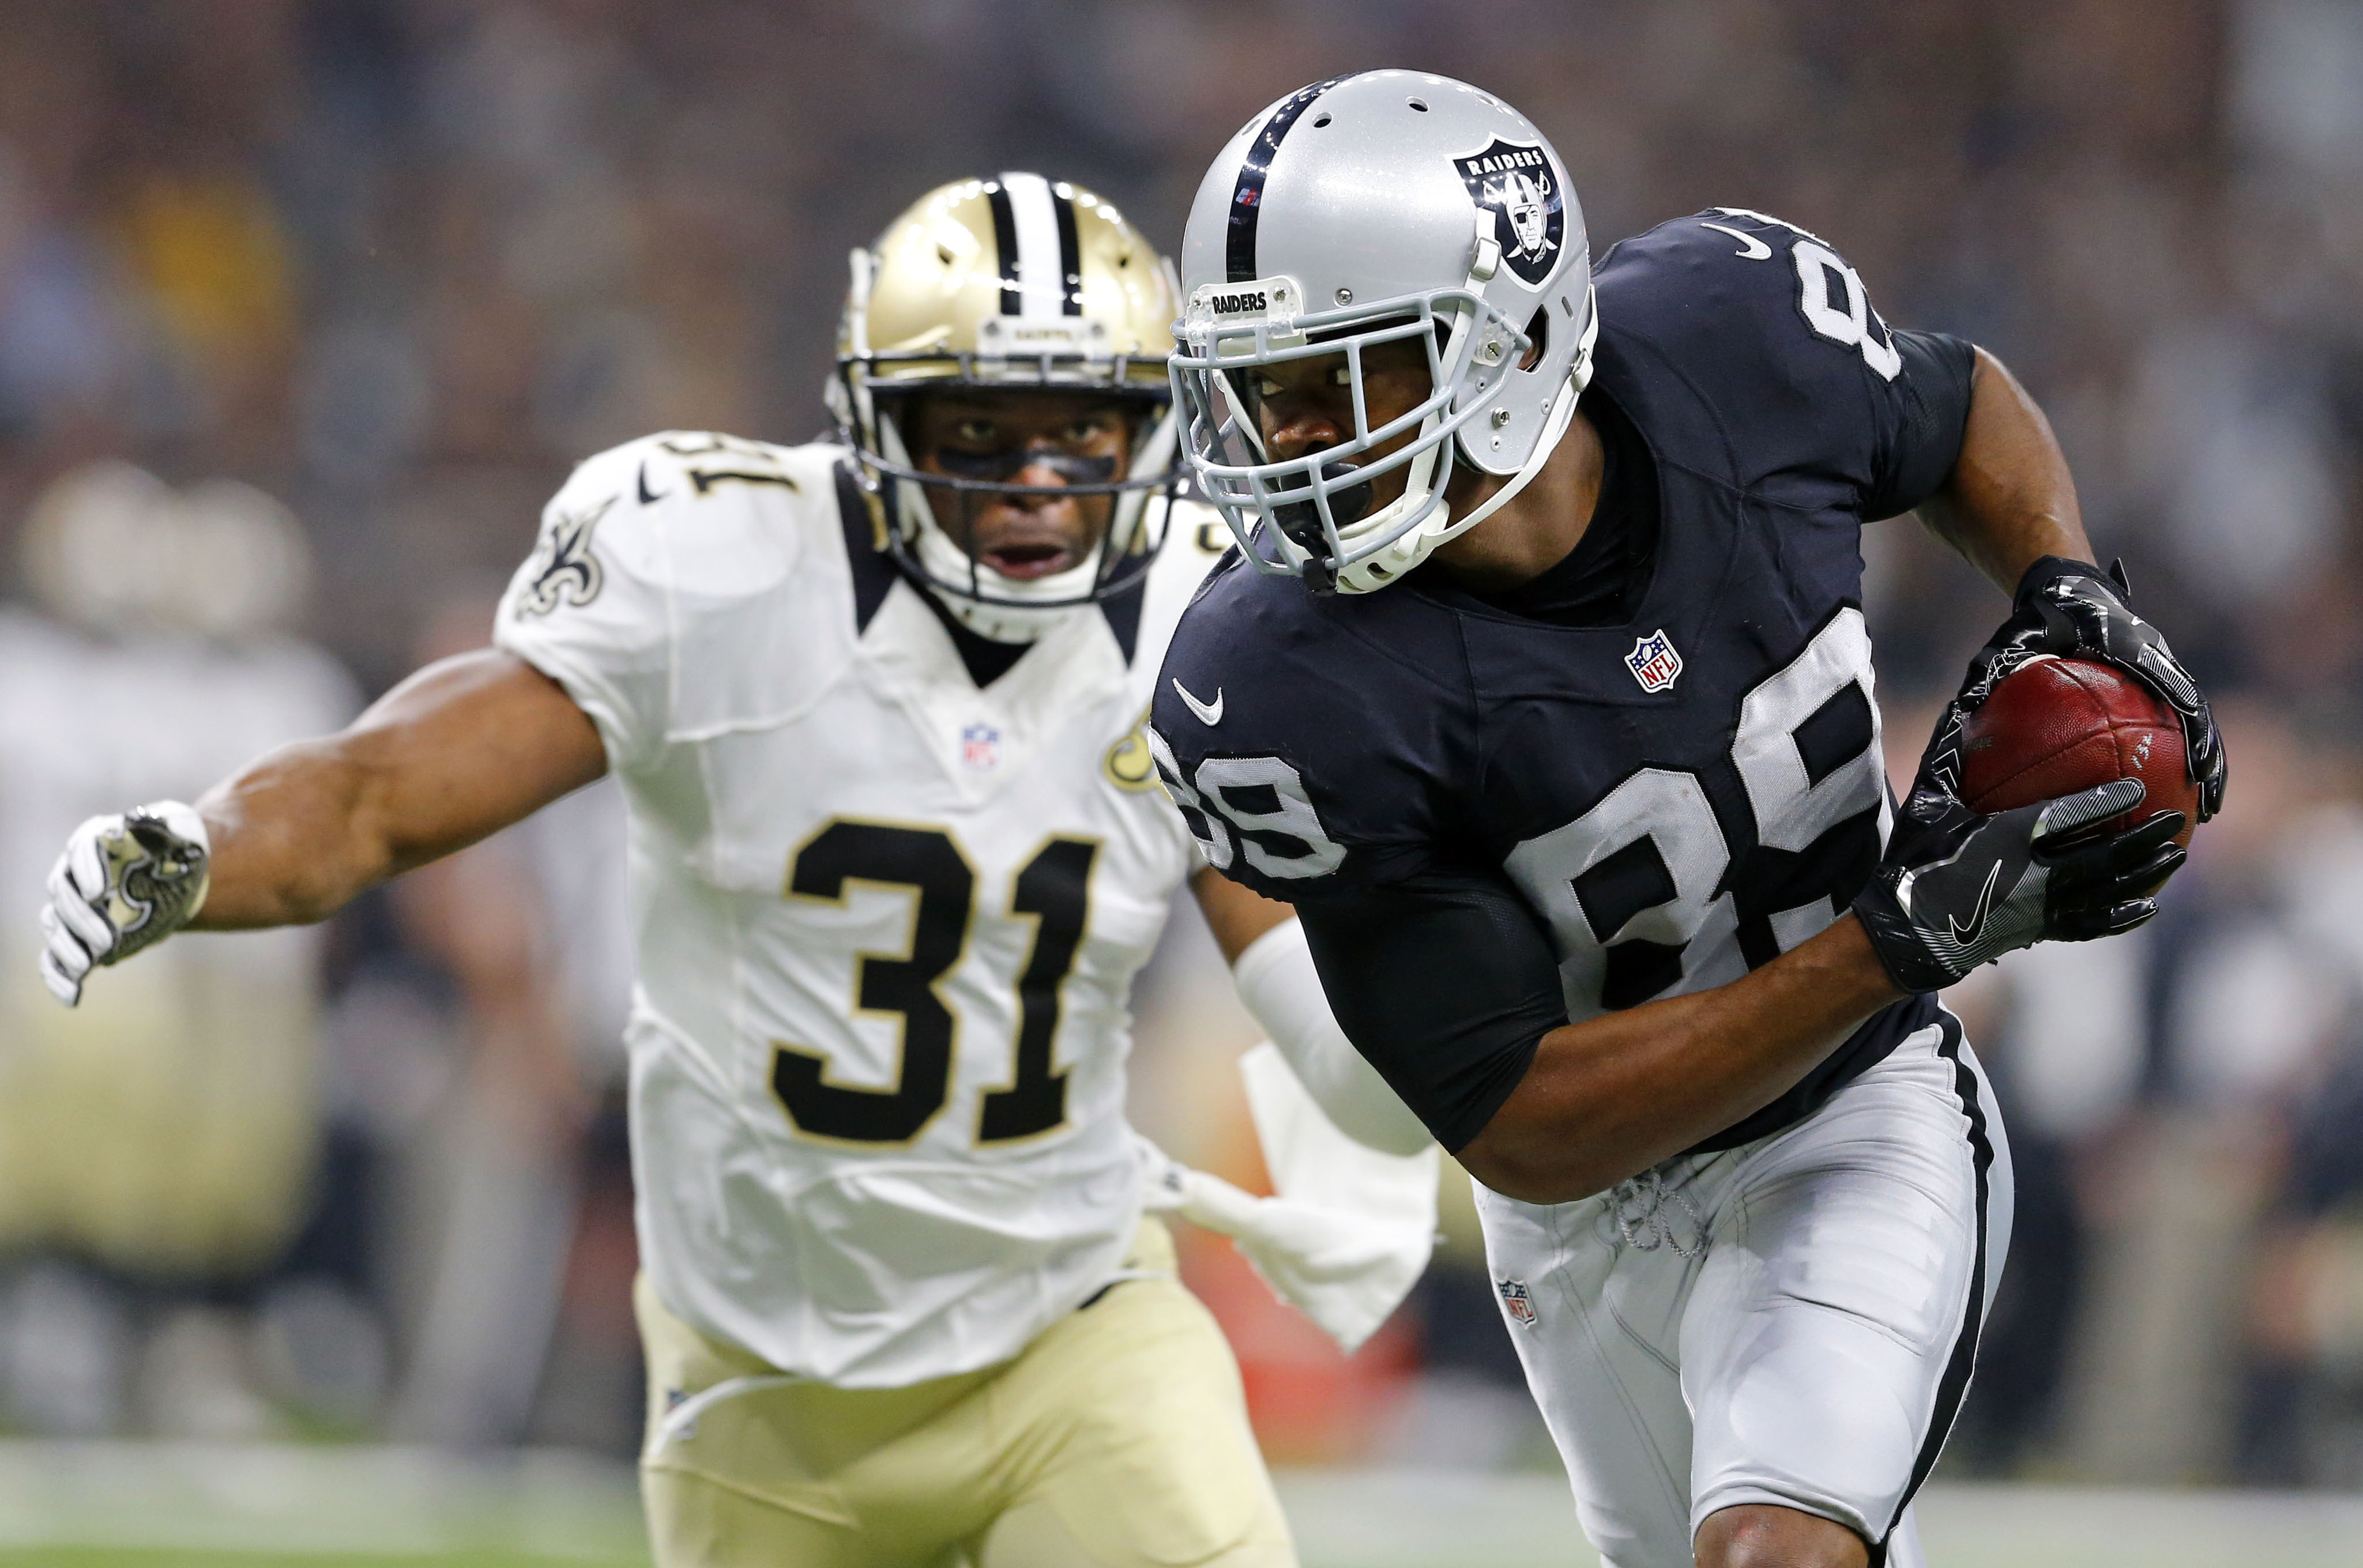 FILE - In this Sunday, Sept. 11, 2016, file photo, Oakland Raiders wide receiver Amari Cooper (89) pulls in a pass reception in front of New Orleans Saints free safety Jairus Byrd (31) in the first half of an NFL football game in New Orleans. When Amari C